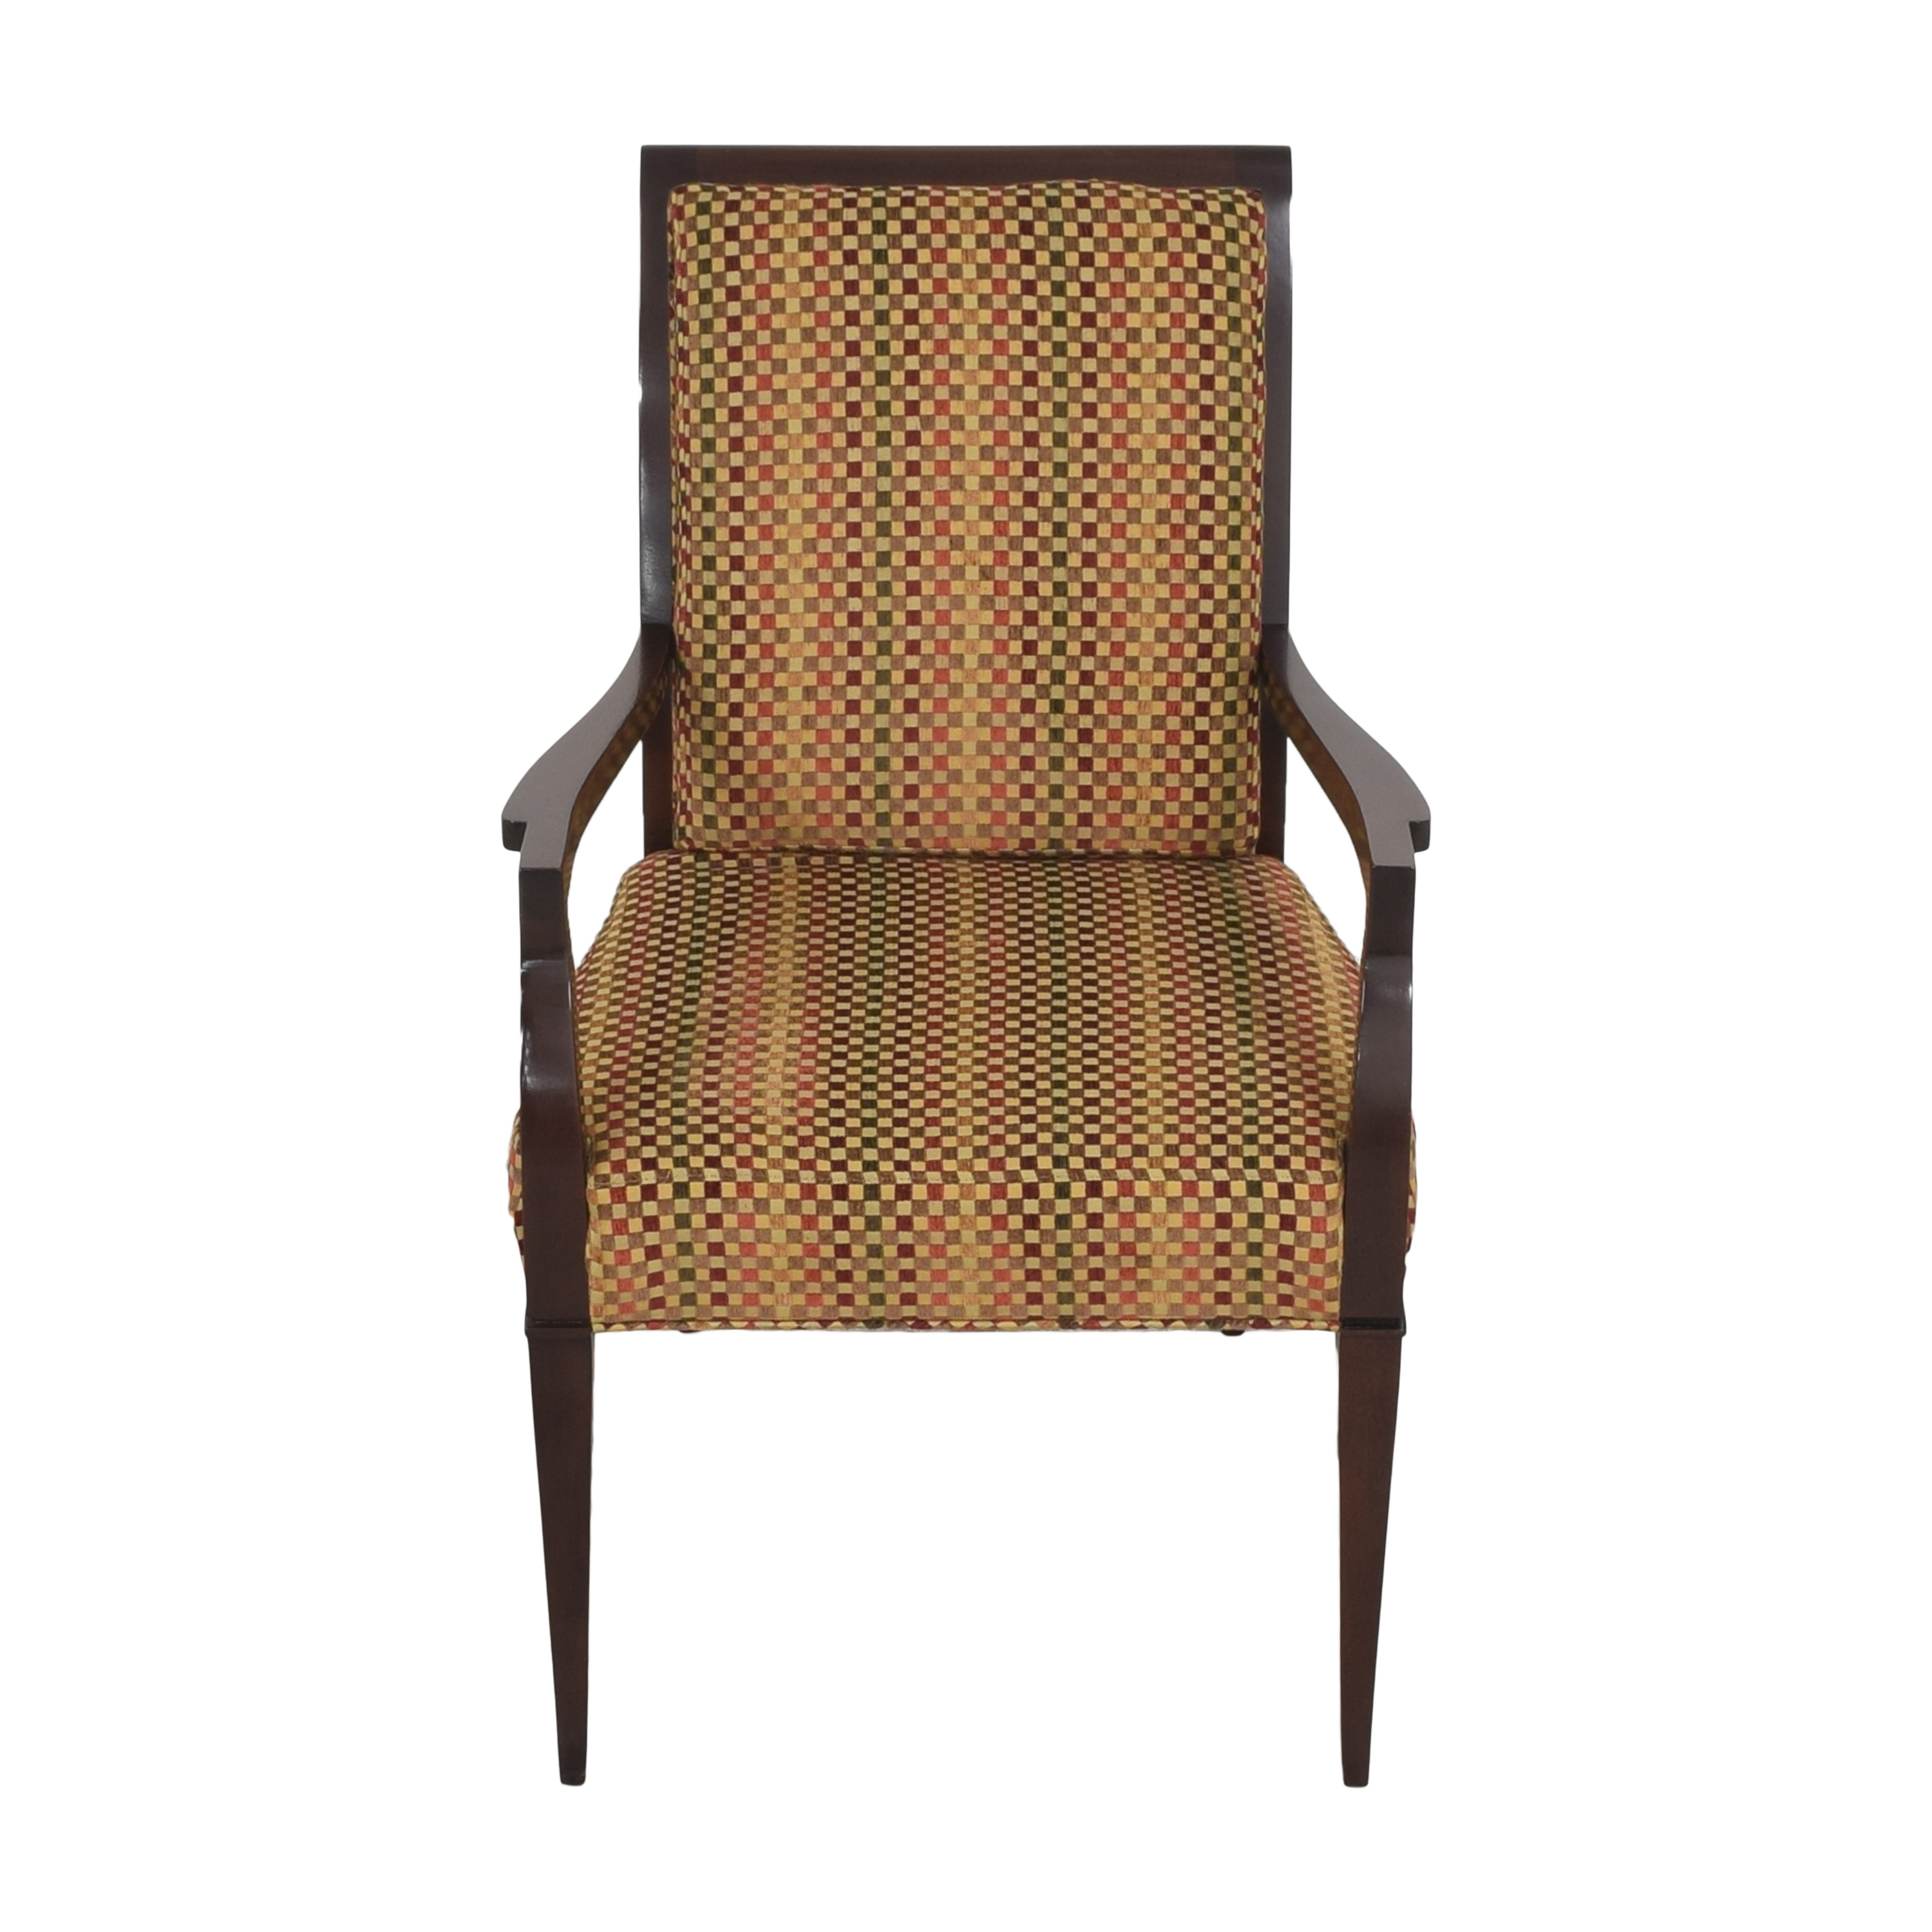 Councill Council Upholstered Chair